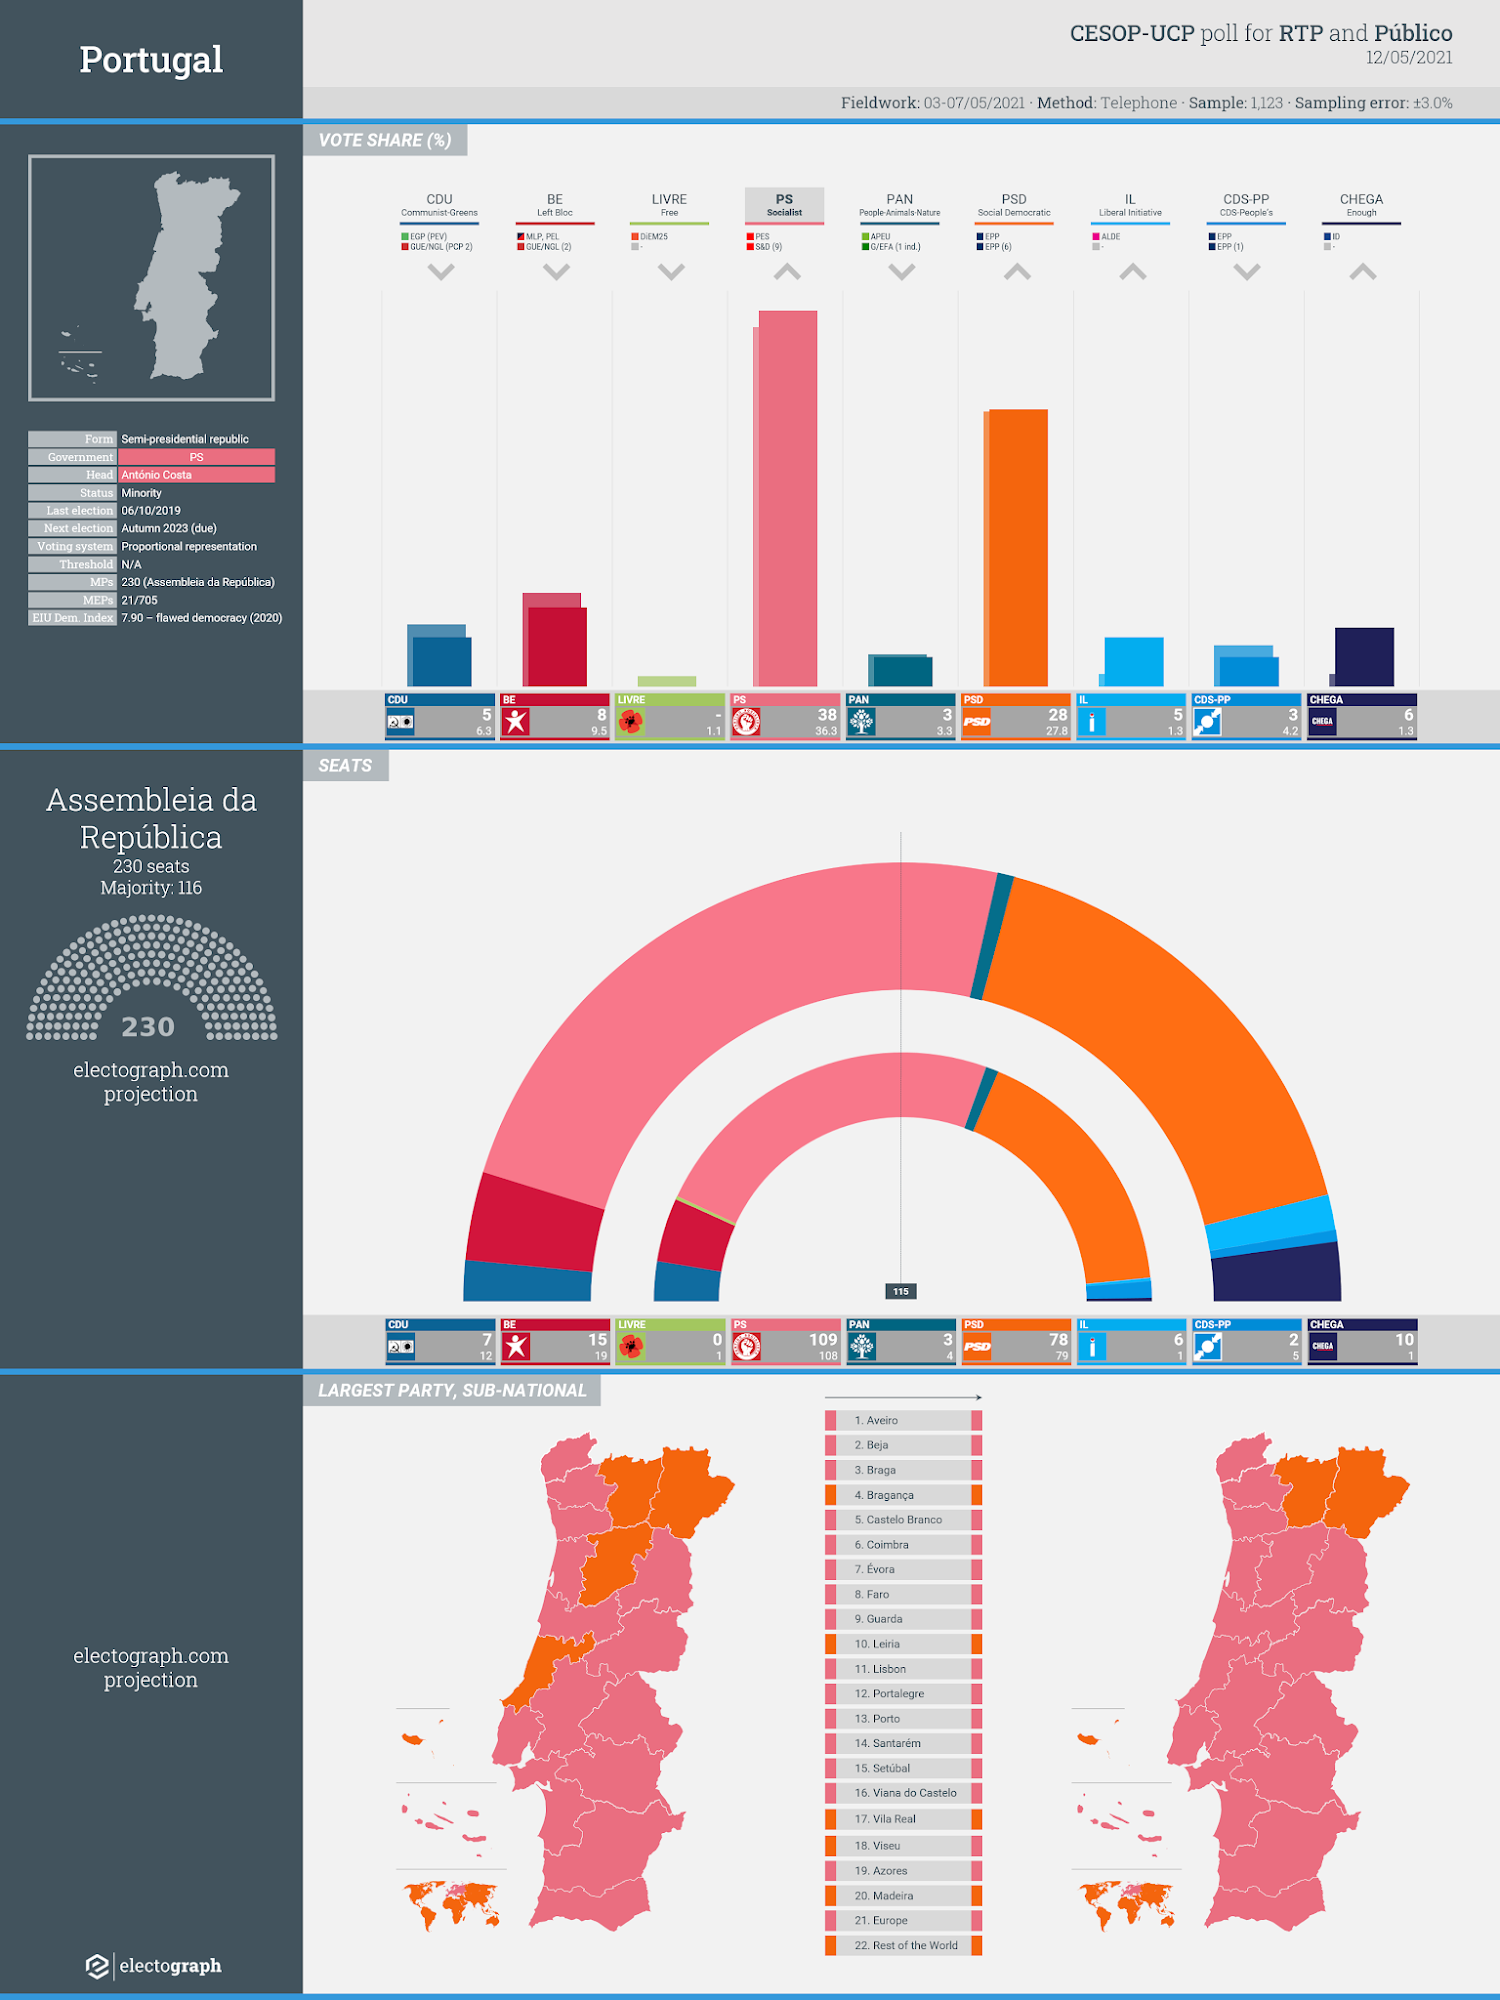 PORTUGAL: CESOP-UCP poll chart for RTP and Público, 12 May 2021